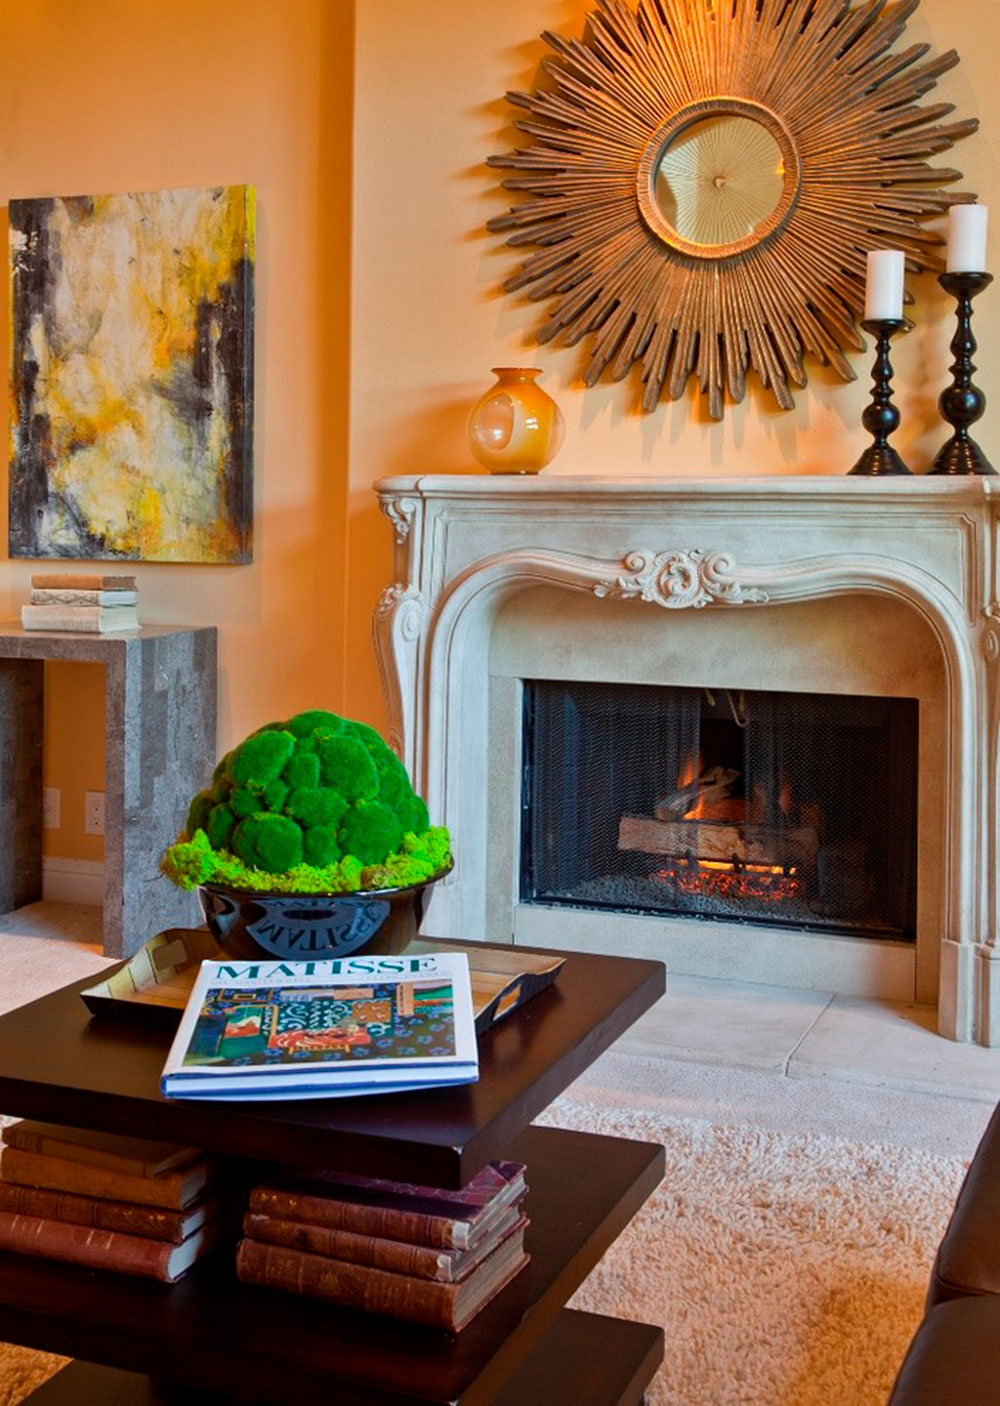 Fireplace mantle decoration ideas for a cozy home 8 fireplace mantle decoration ideas for a cozy home